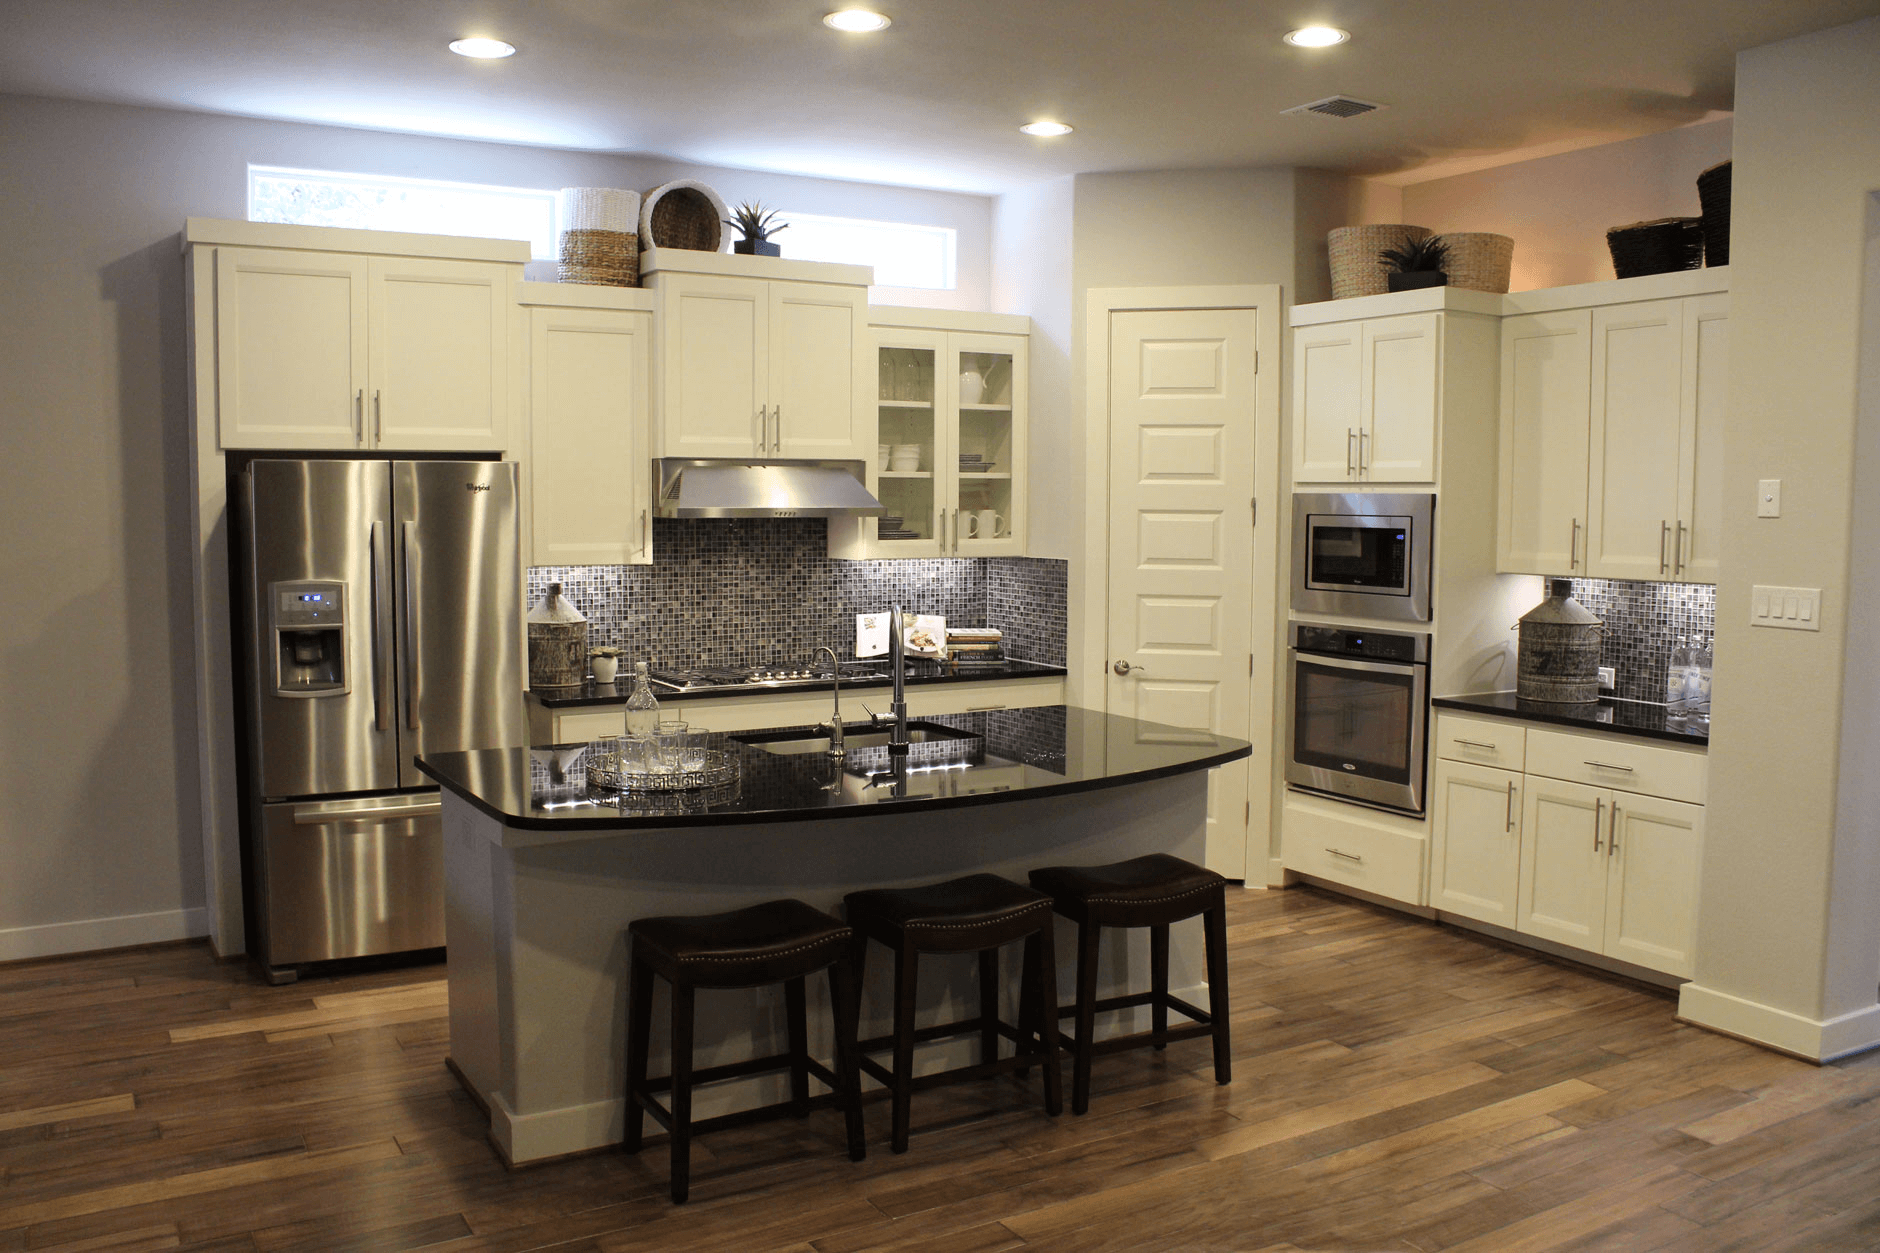 Countertop Cabinet And Floor Are Three Dominating Components In A